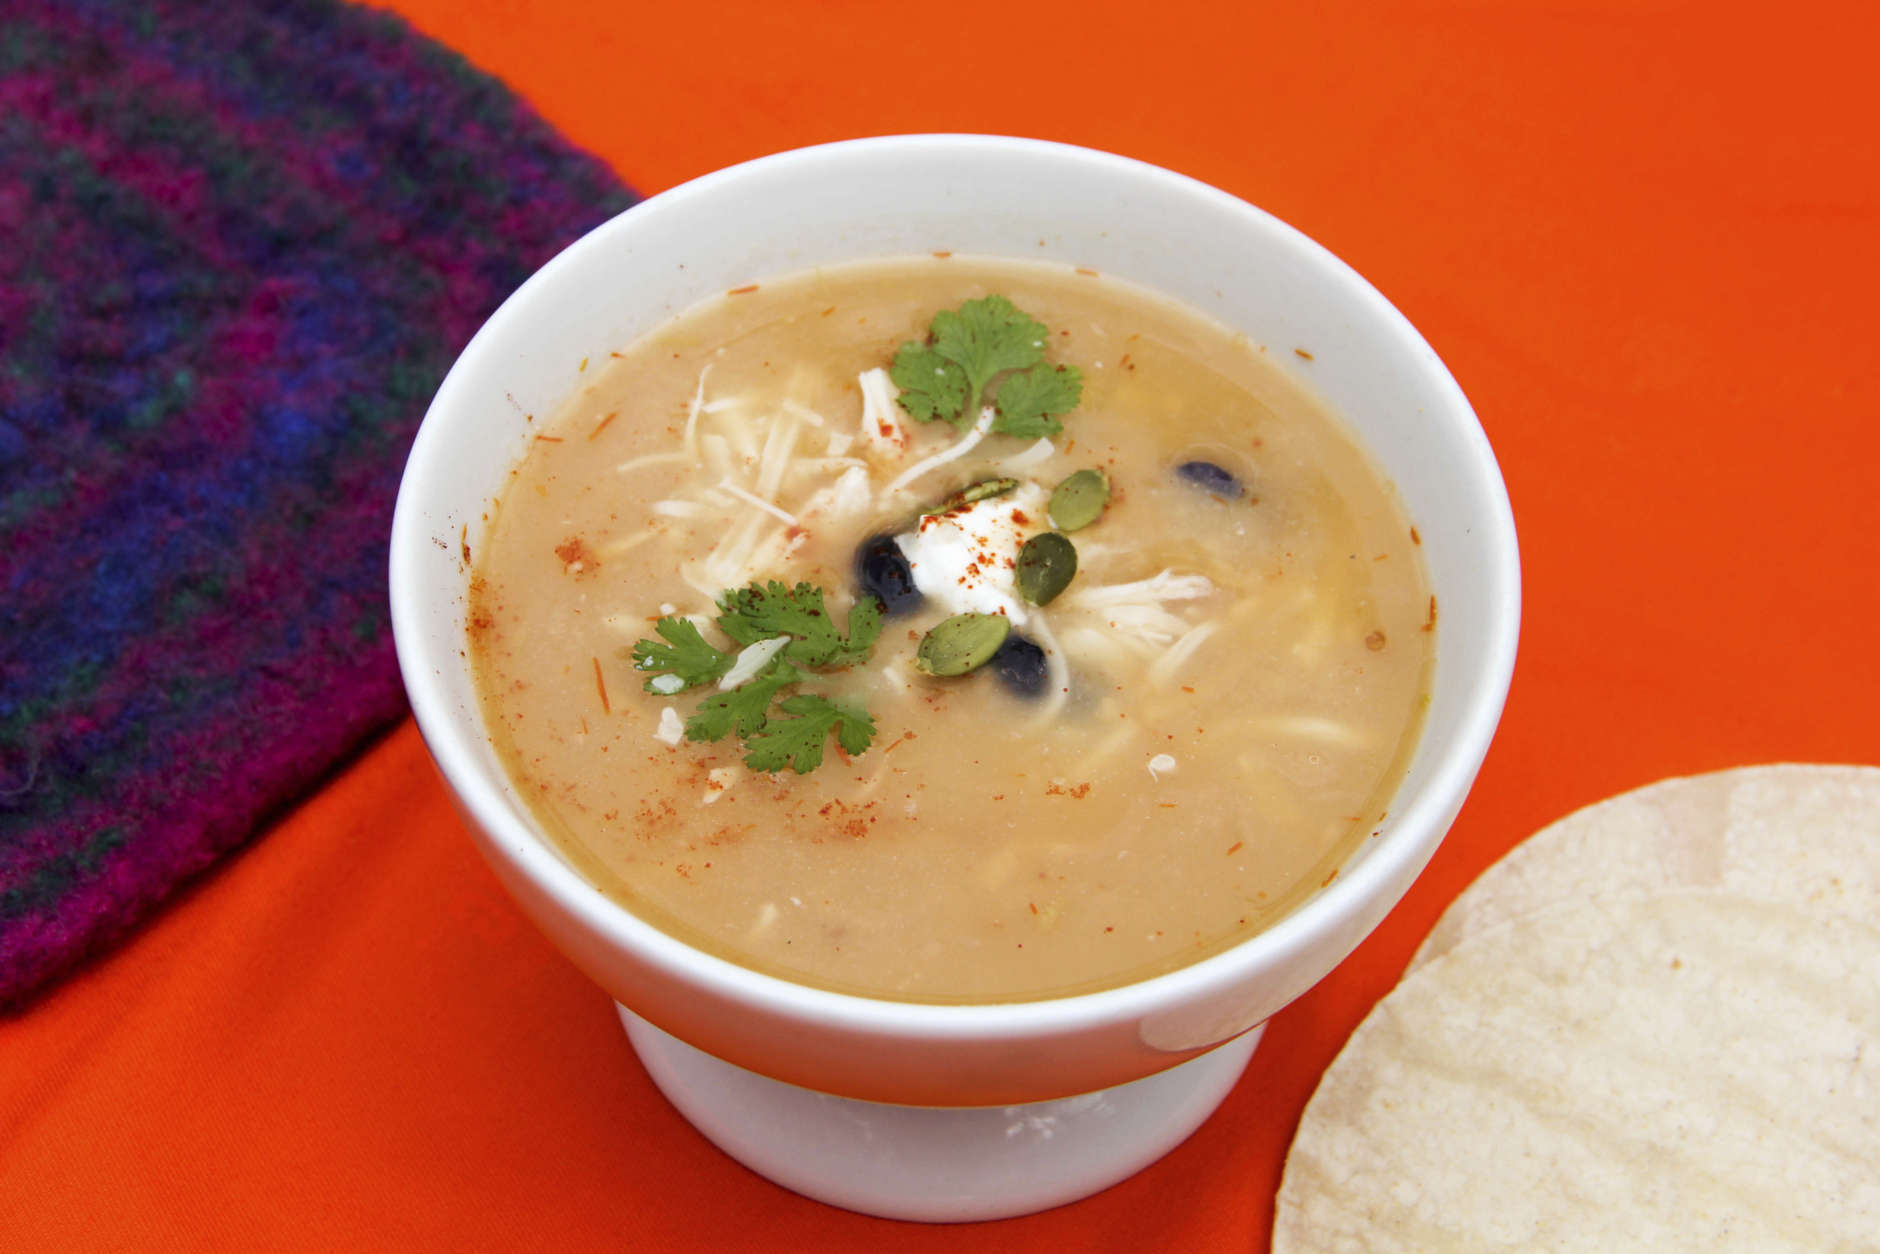 This Oct. 4, 2017 photo shows a bowl of ten-minute tortilla soup in Bethesda, Md. This dish is from a recipe by Melissa d'Arabian. (Melissa d'Arabian via AP)